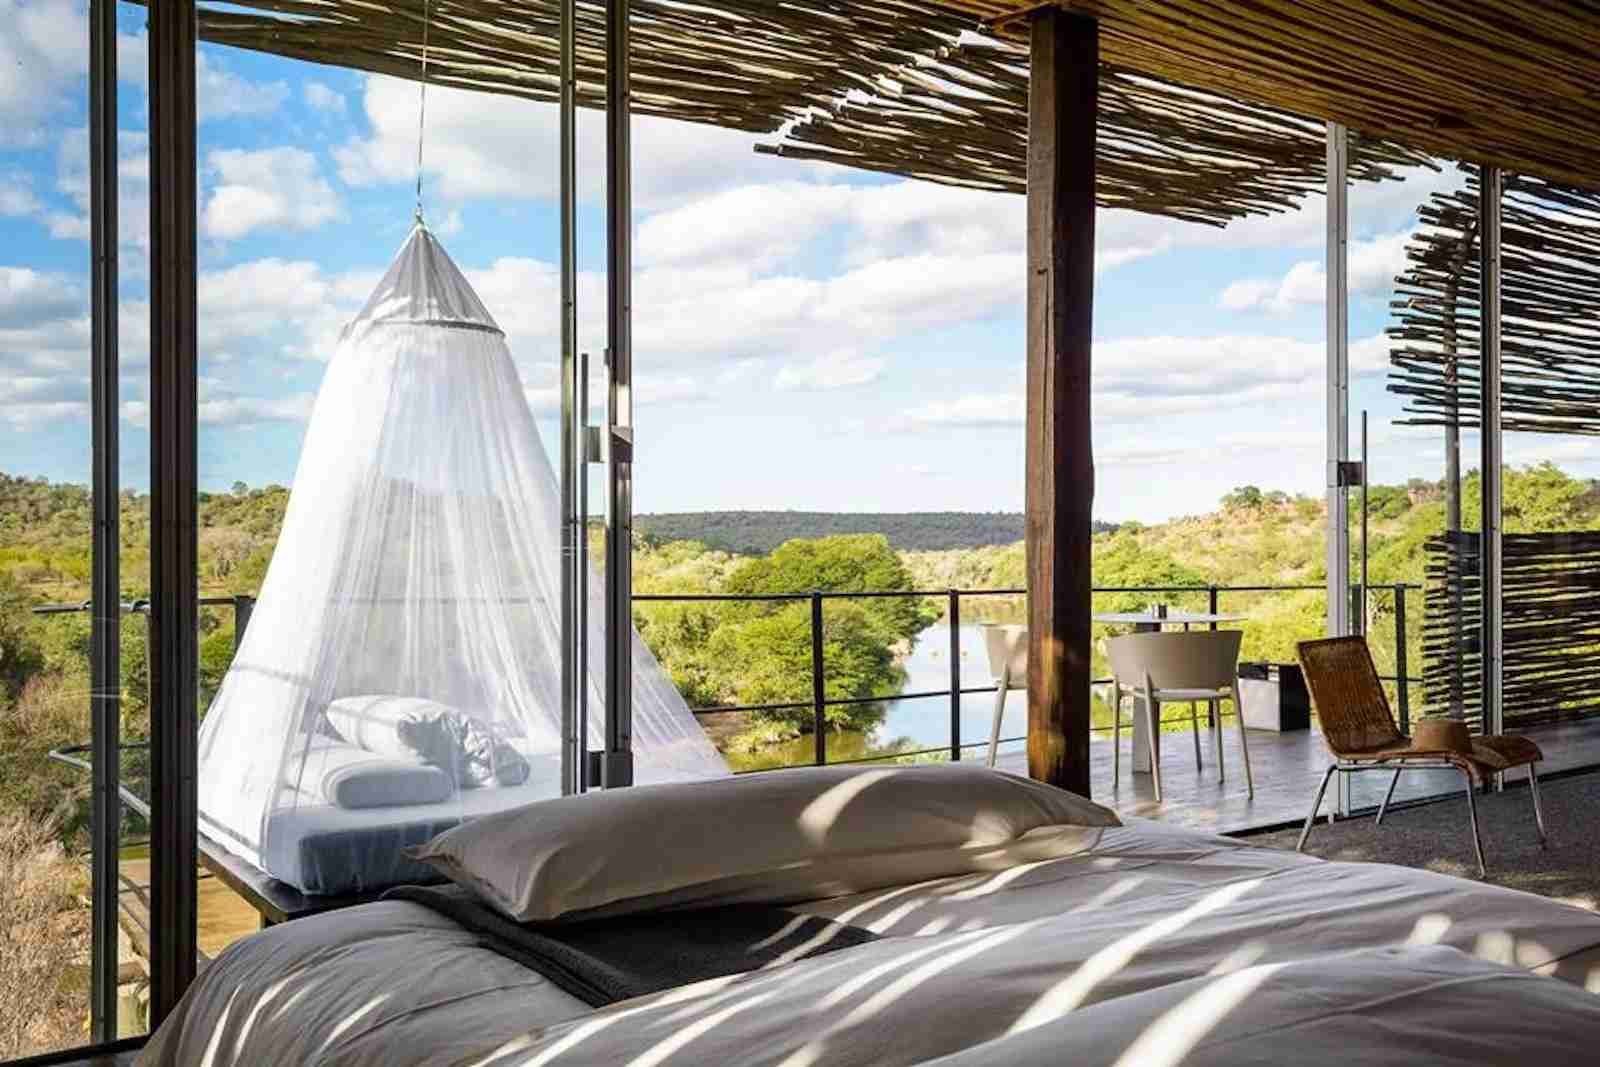 (Photo courtesy of Singita, Lebombo)